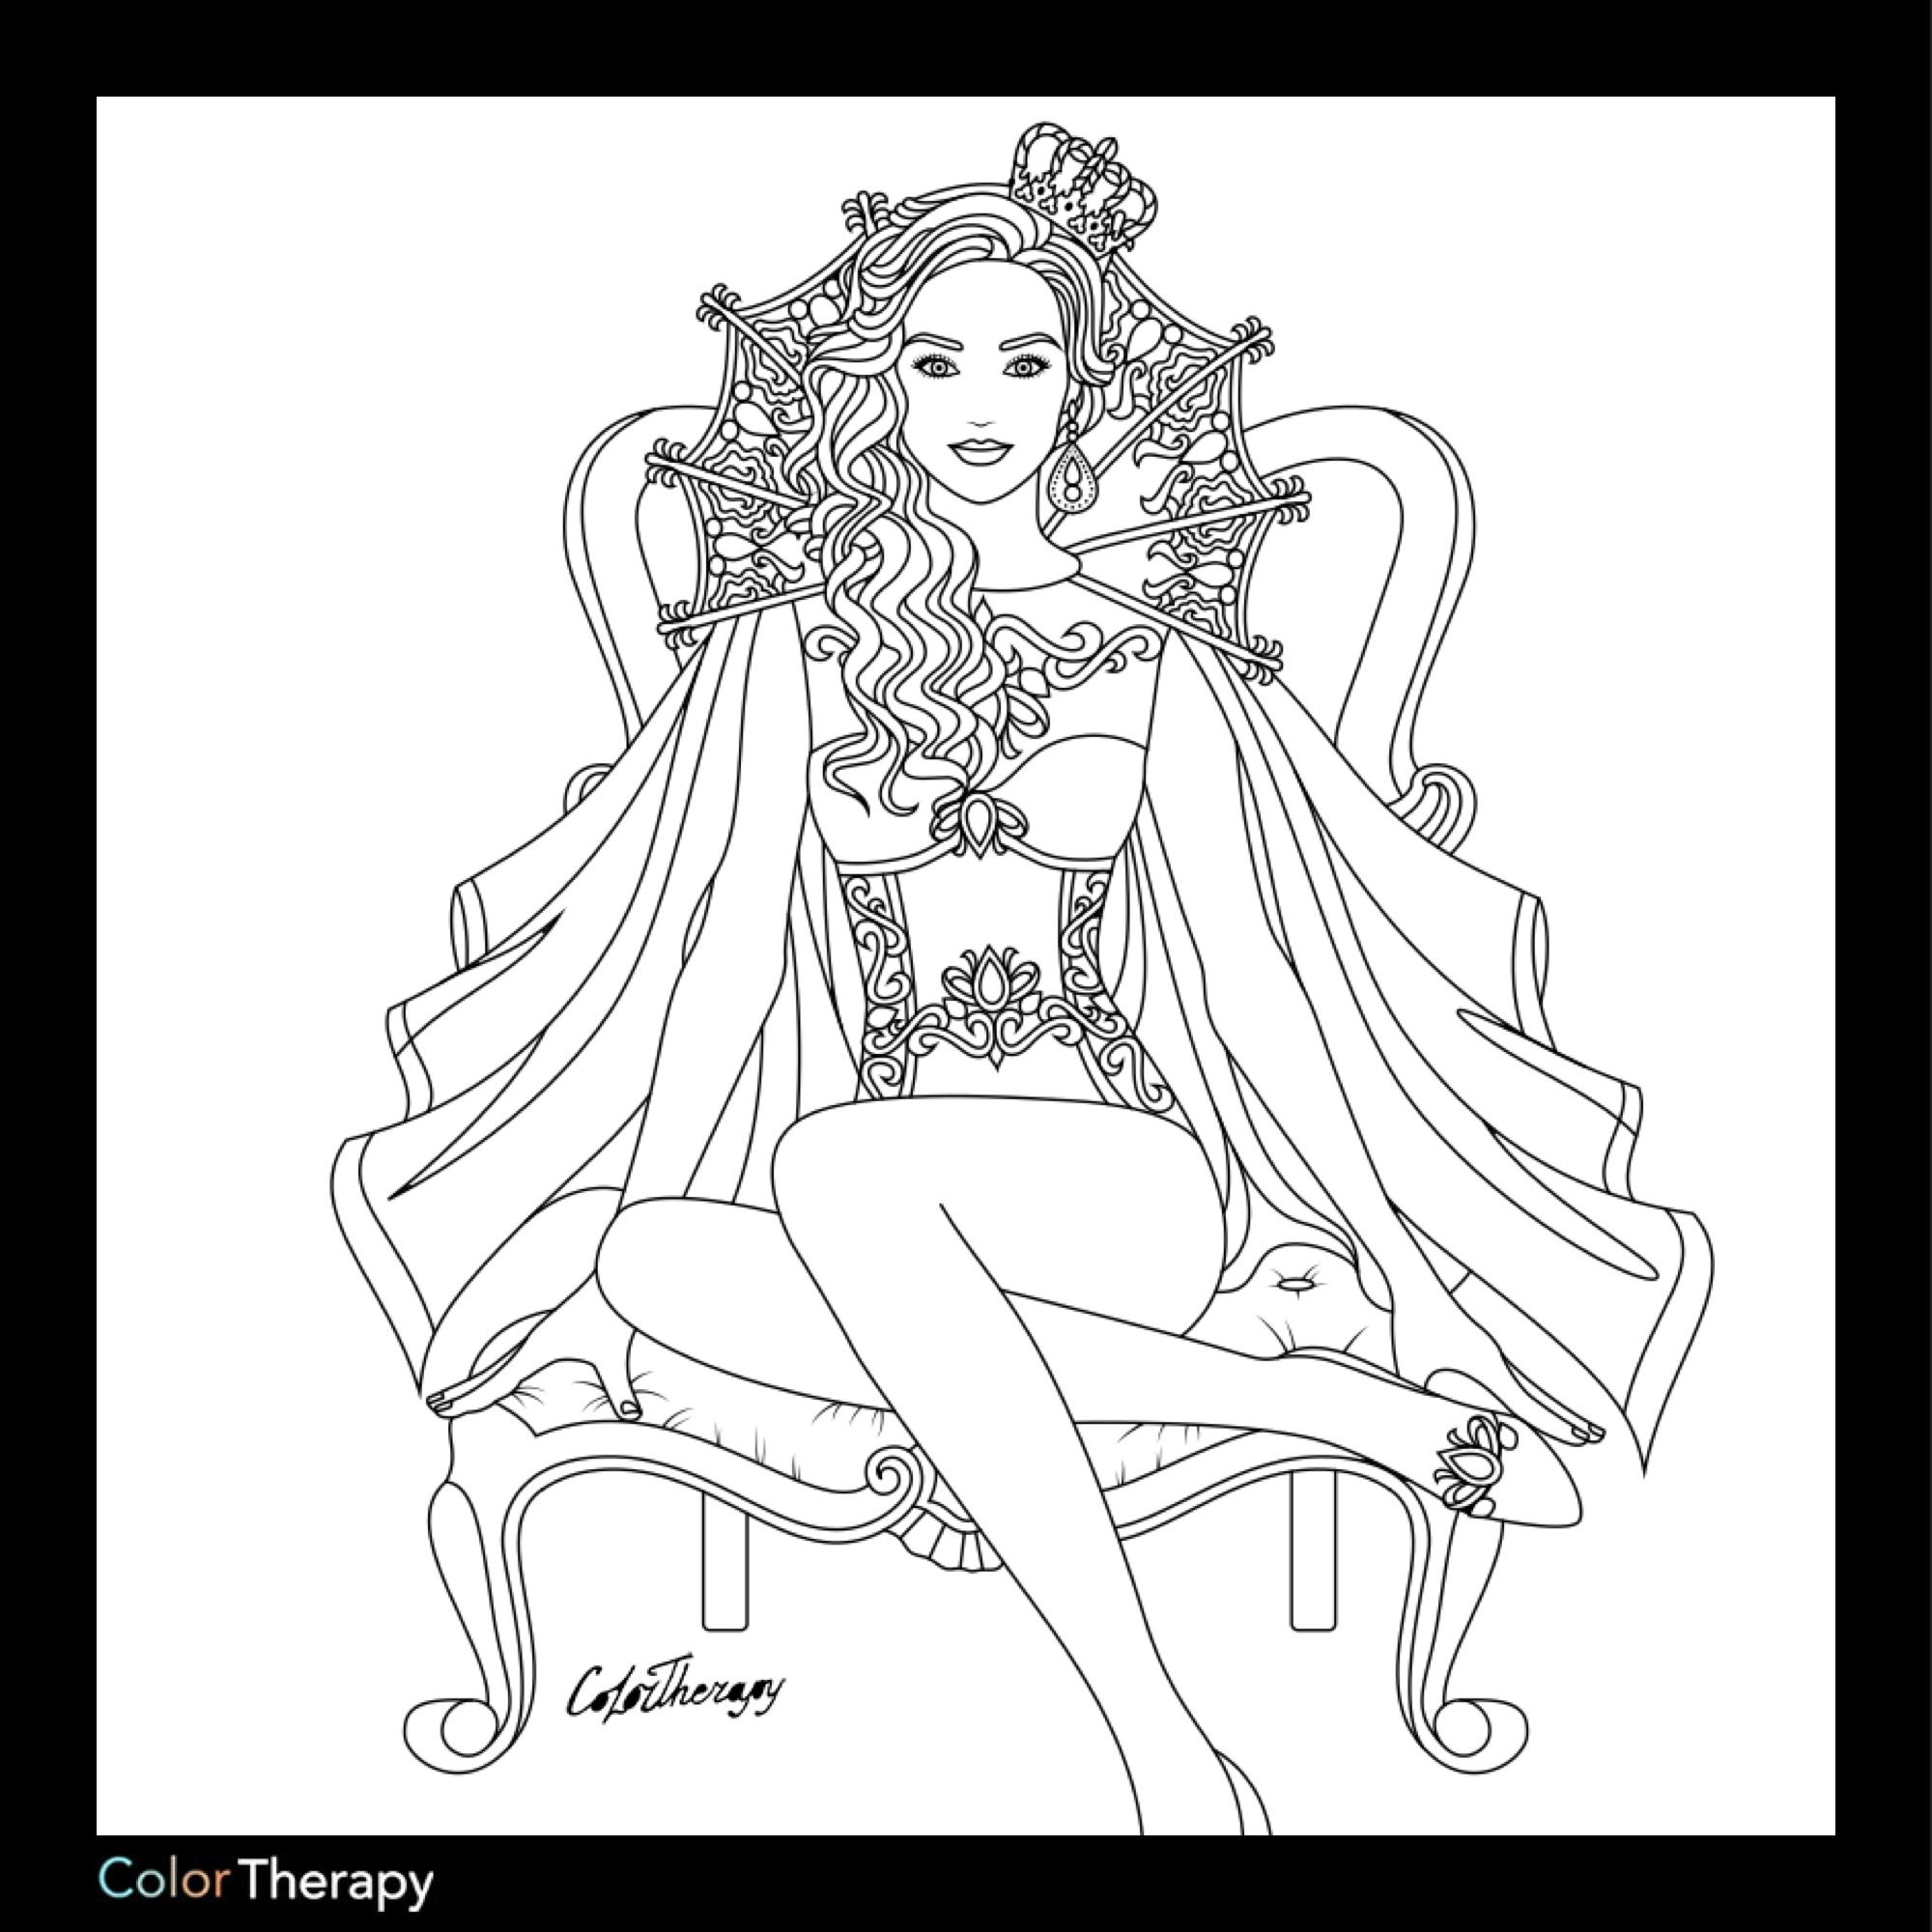 Beauty Queen Coloring Page Mermaid Coloring Pages People Coloring Pages Coloring Pages